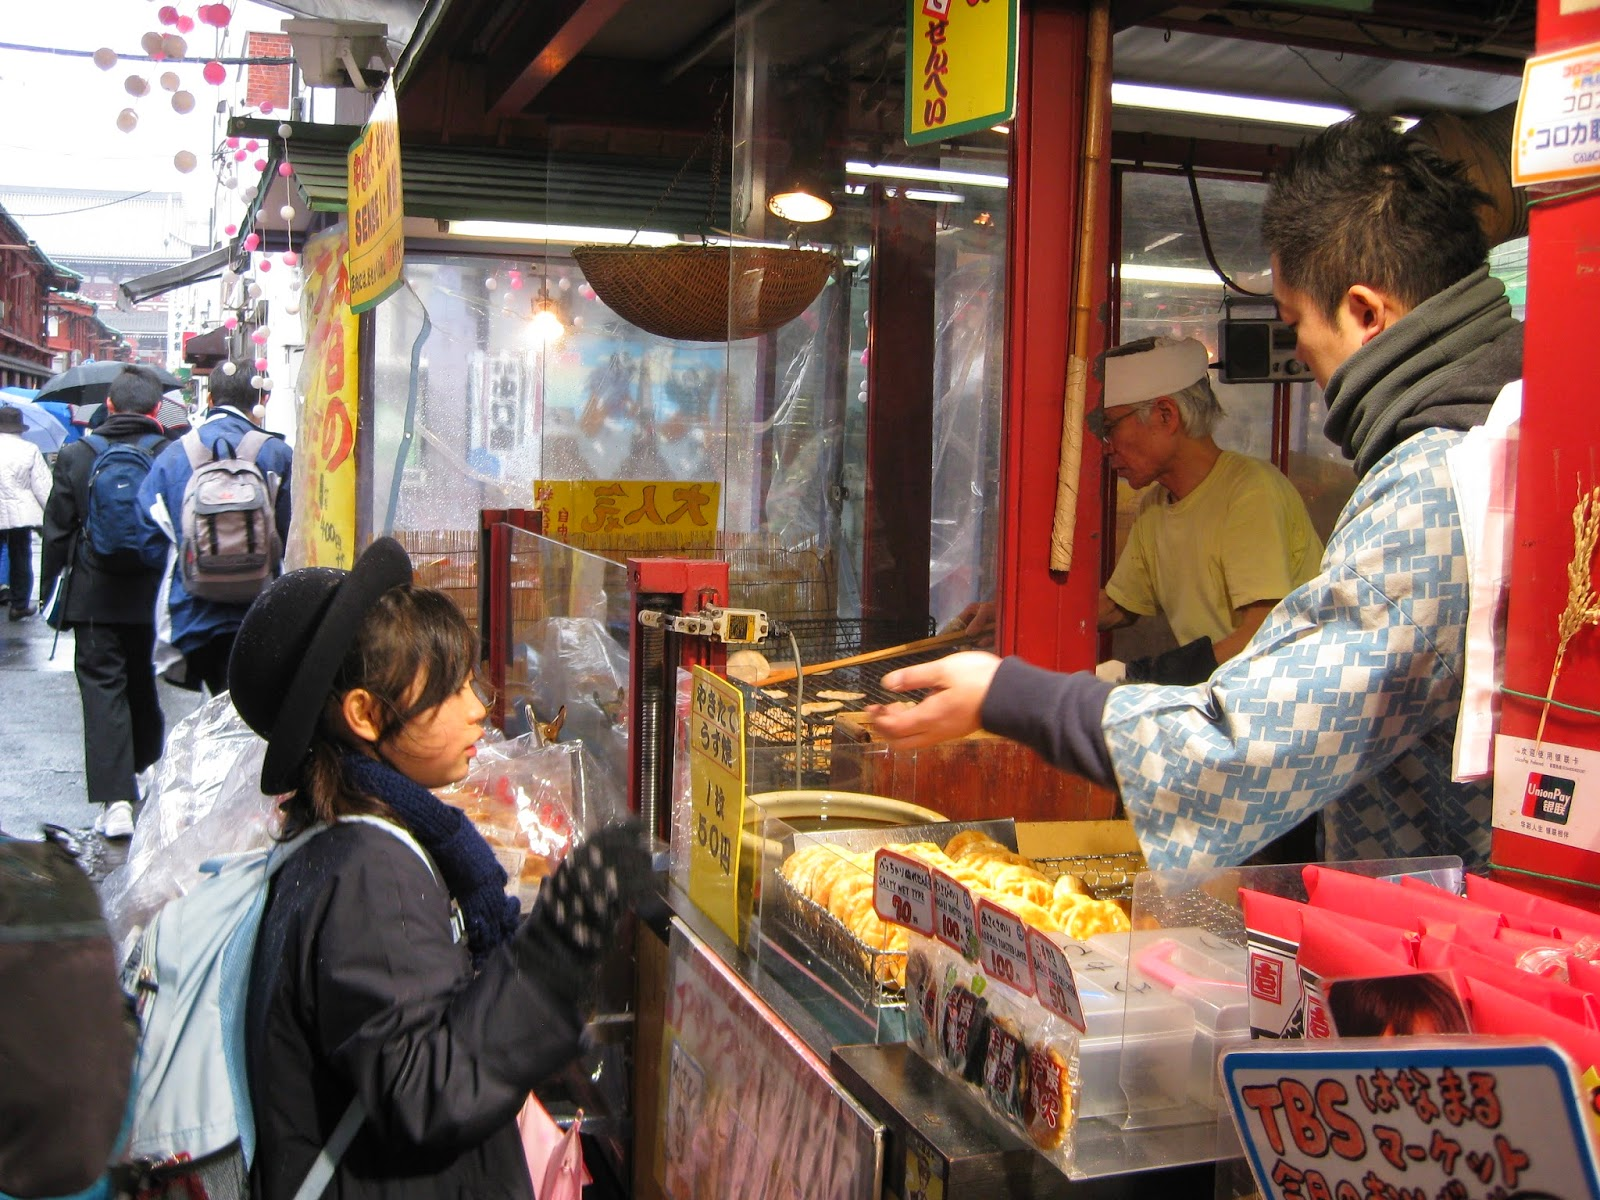 Tokyo - A schoolgirl (love her hat!) buys a rice cracker from a street vendor